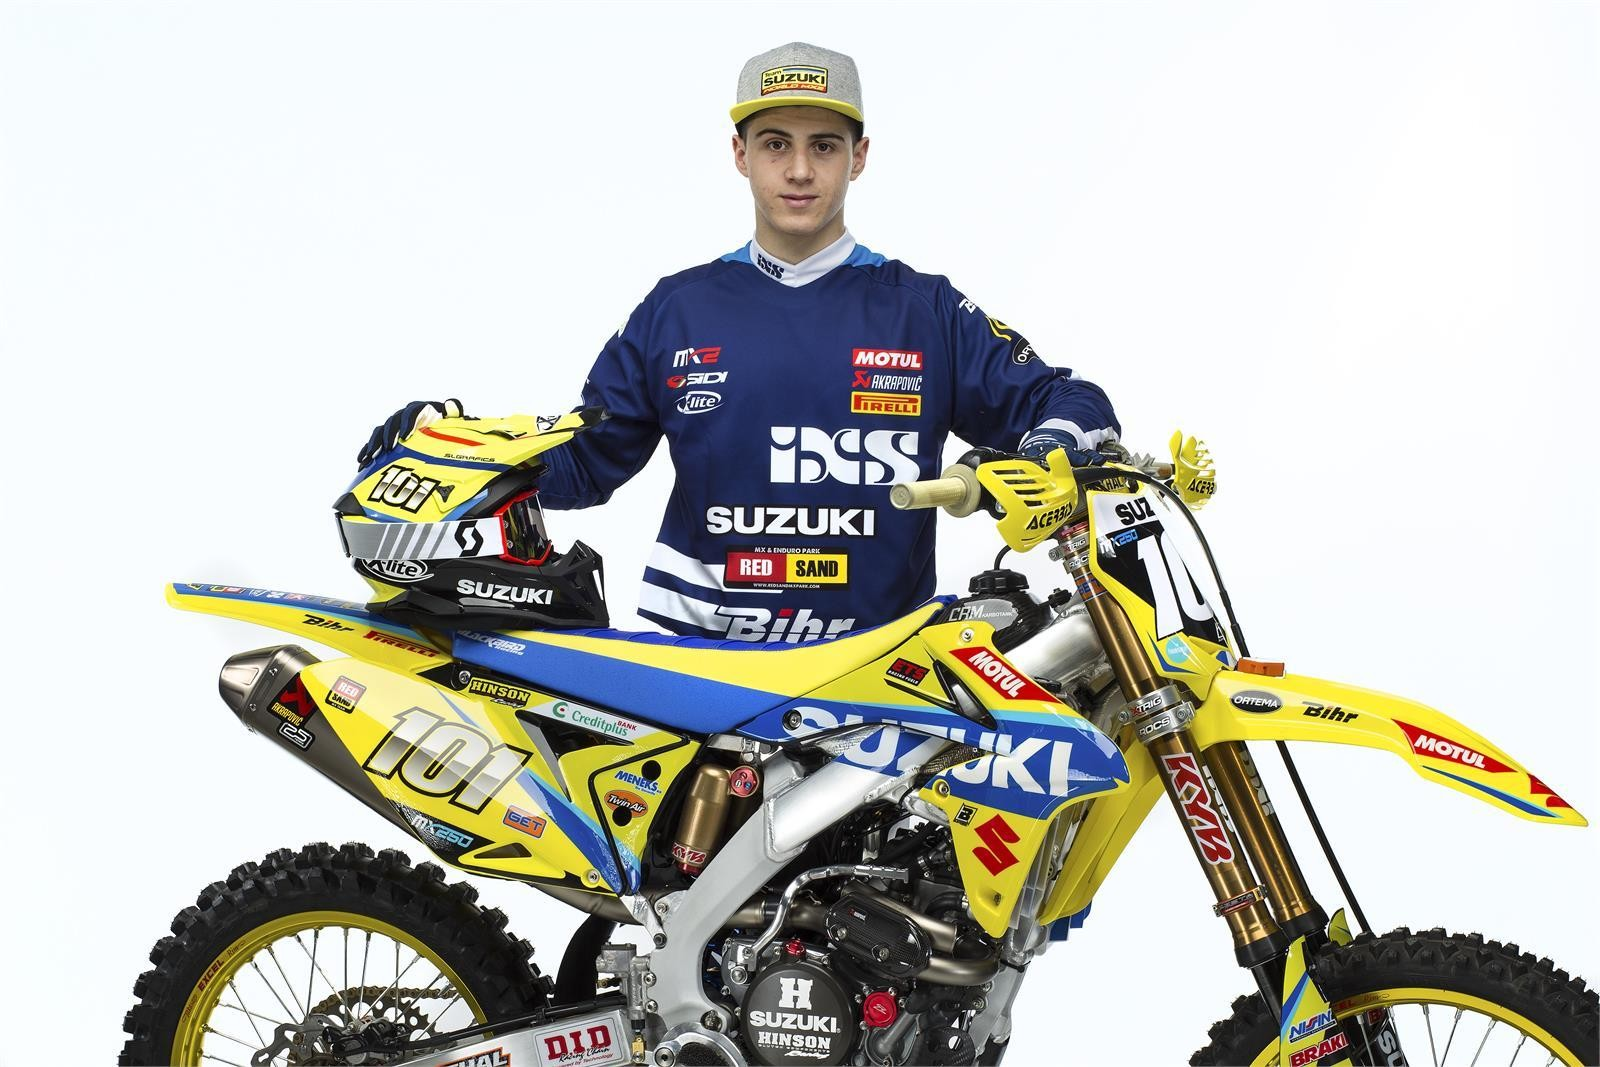 Zachary Pichon and his 2017 Suzuki World MX2 RM-Z250 - First Look: 2017 Suzuki World MX2 Team - Motocross Pictures - Vital MX